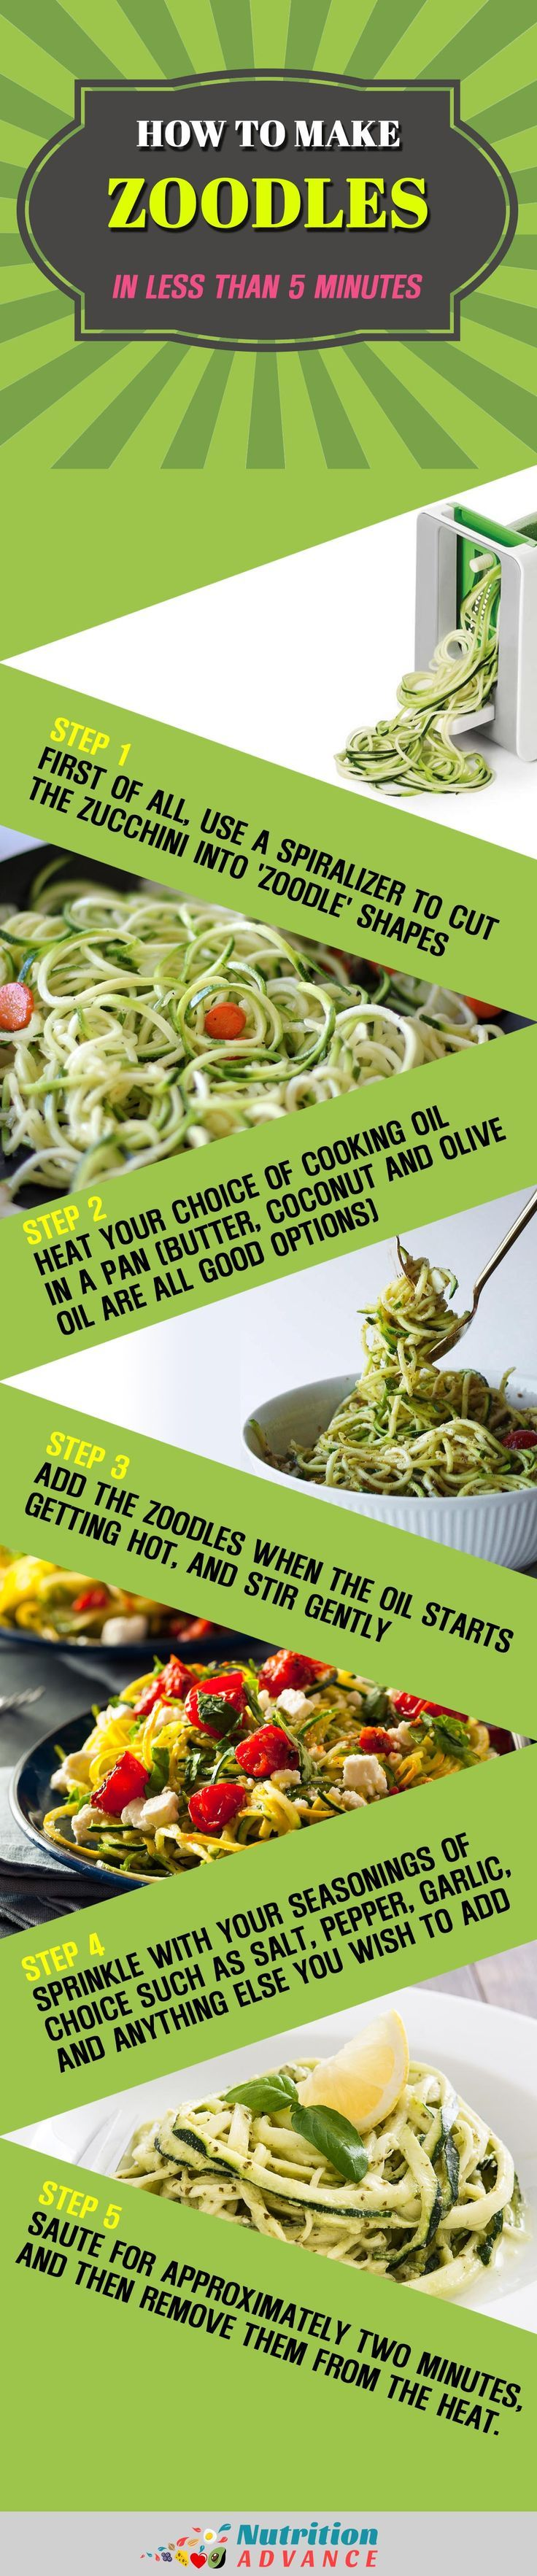 Low Carb Zoodles. This infographic explains how to make zoodles in 5 very simple steps. Zoodles are a low carb noodle substitute that are perfect for LCHF, paleo and keto diets. For more on the benefits of zoodles, see nutritionadvance.... nutritionadvance.com/